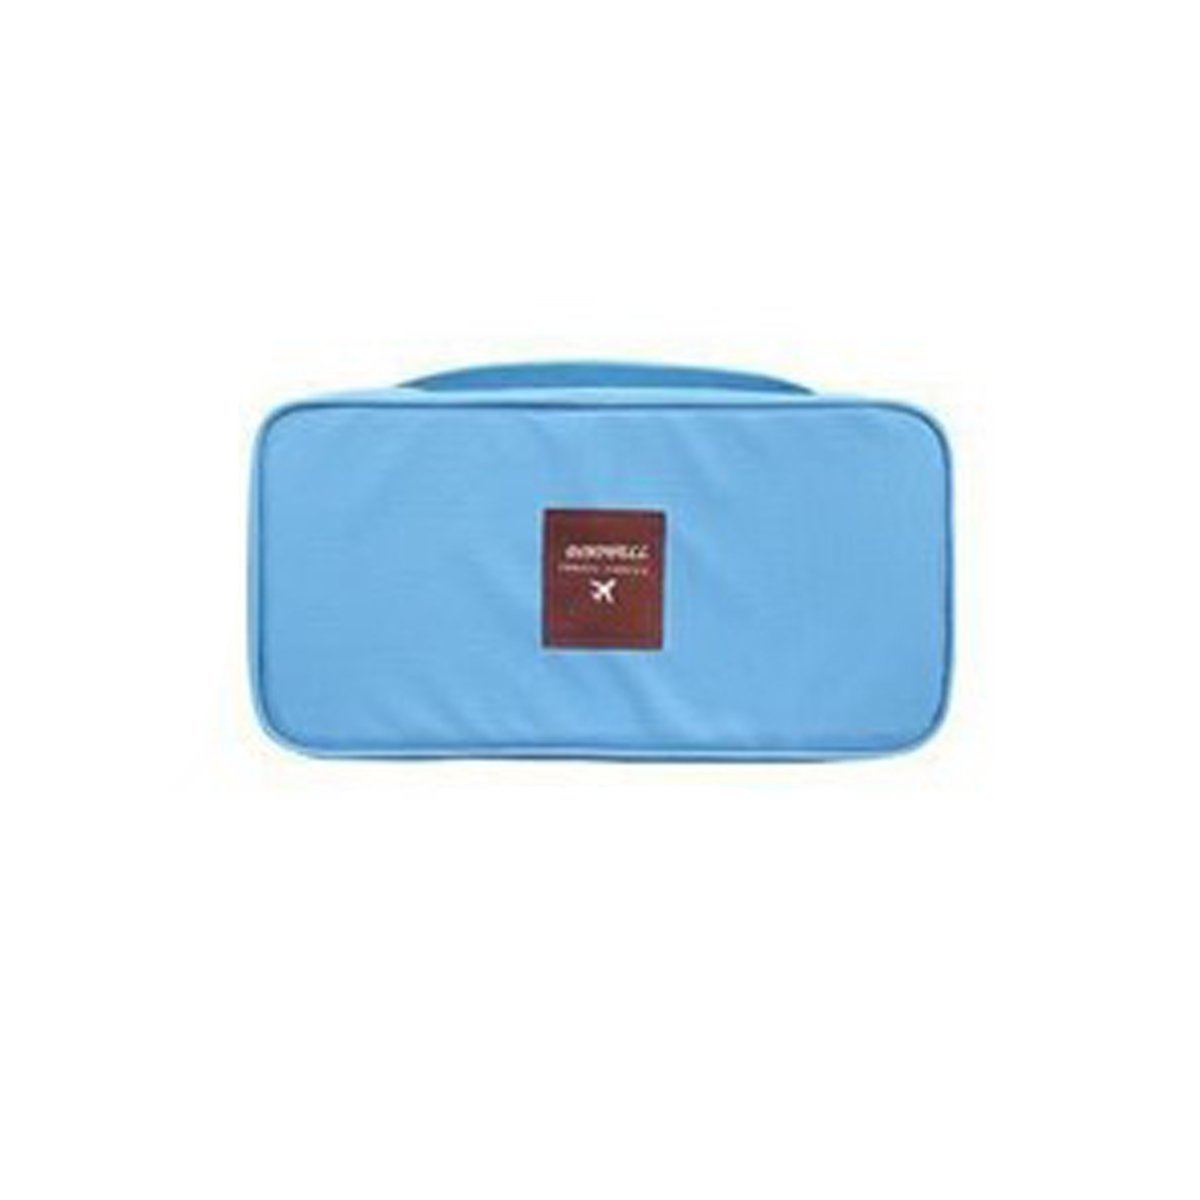 DEHANG Waterproof Nylon Ventilated Durable Portable Organiser Storage Bag for Travel Light Blue